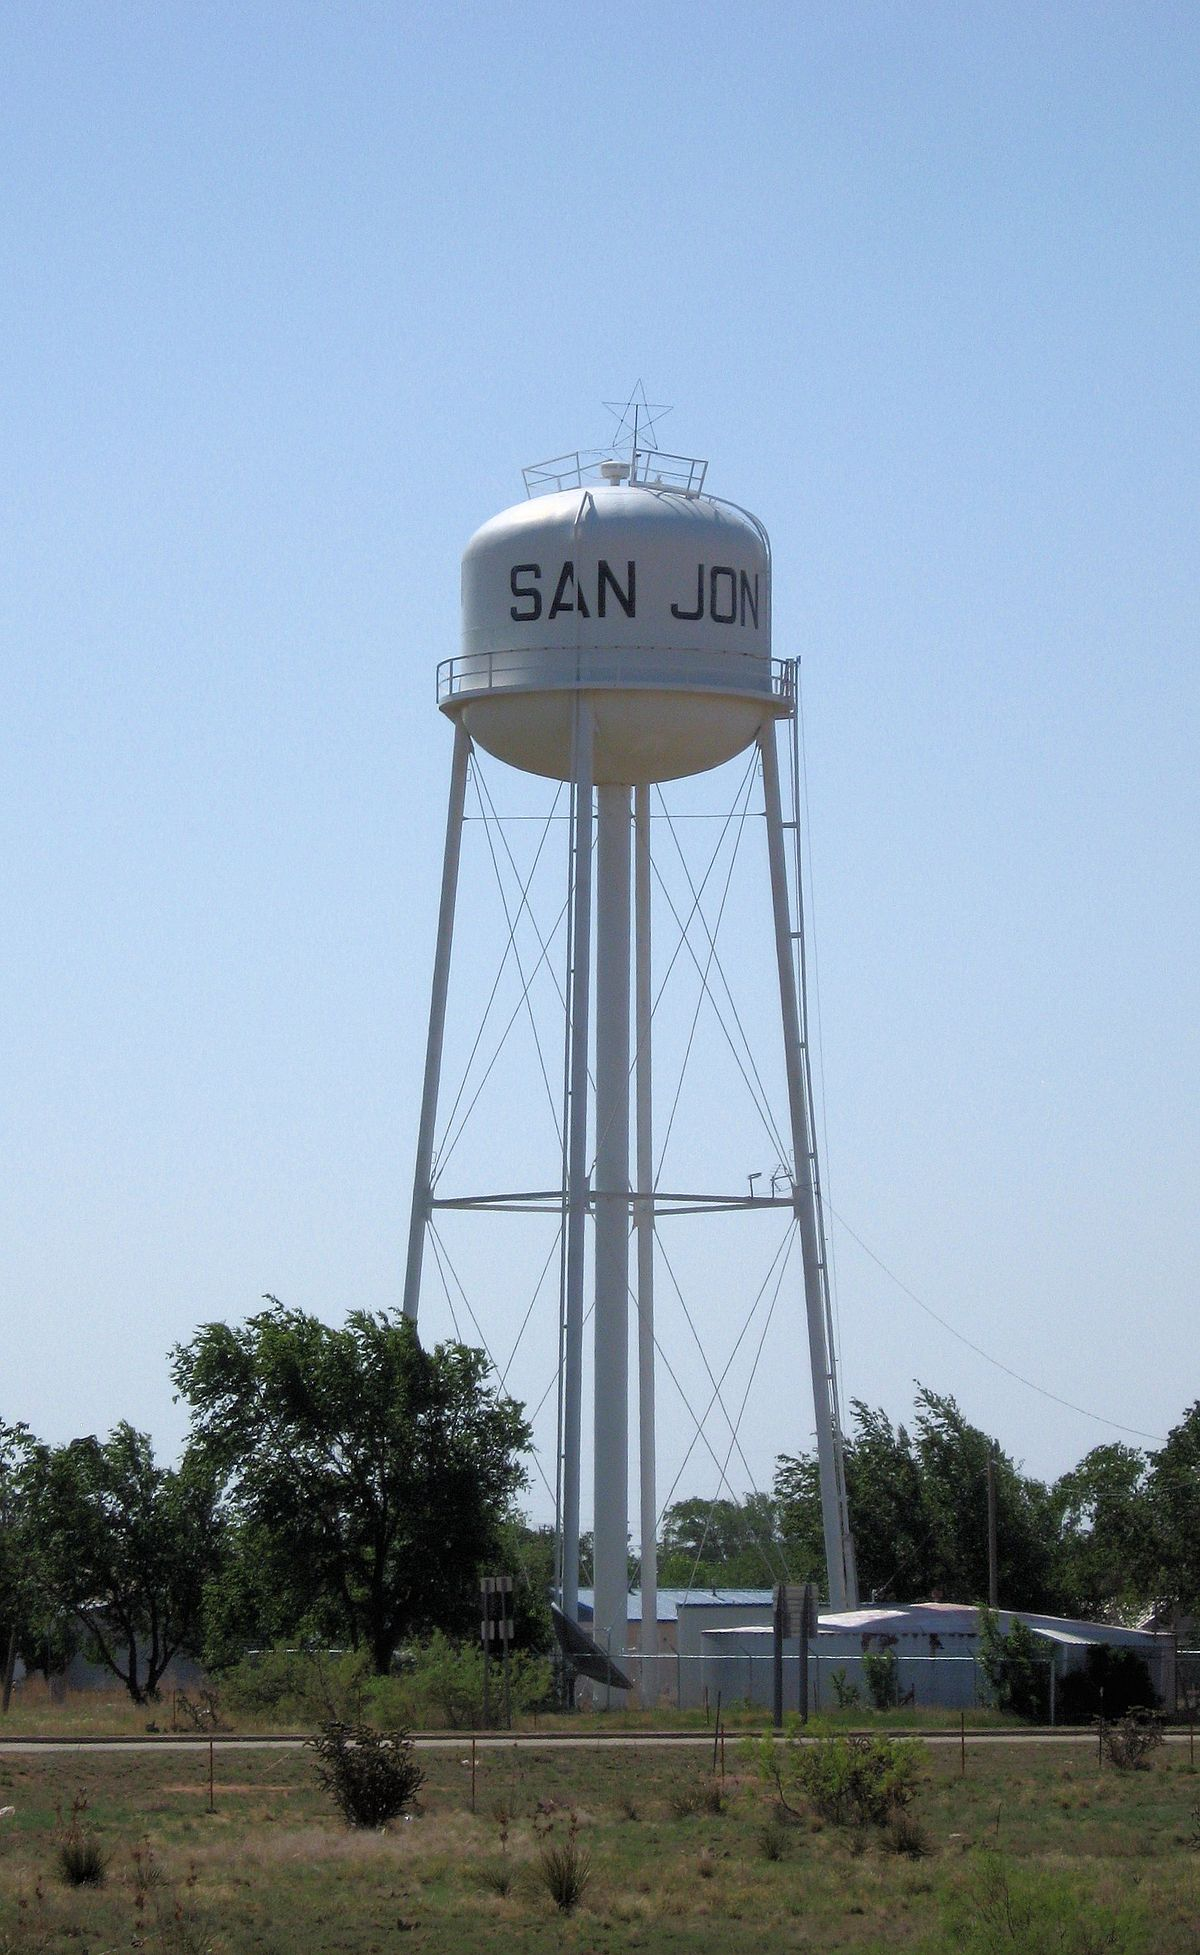 san jon View listings of farms and ranches for sale in san jon, nm find information about ranches, lots, acreage and more at realtorcom.